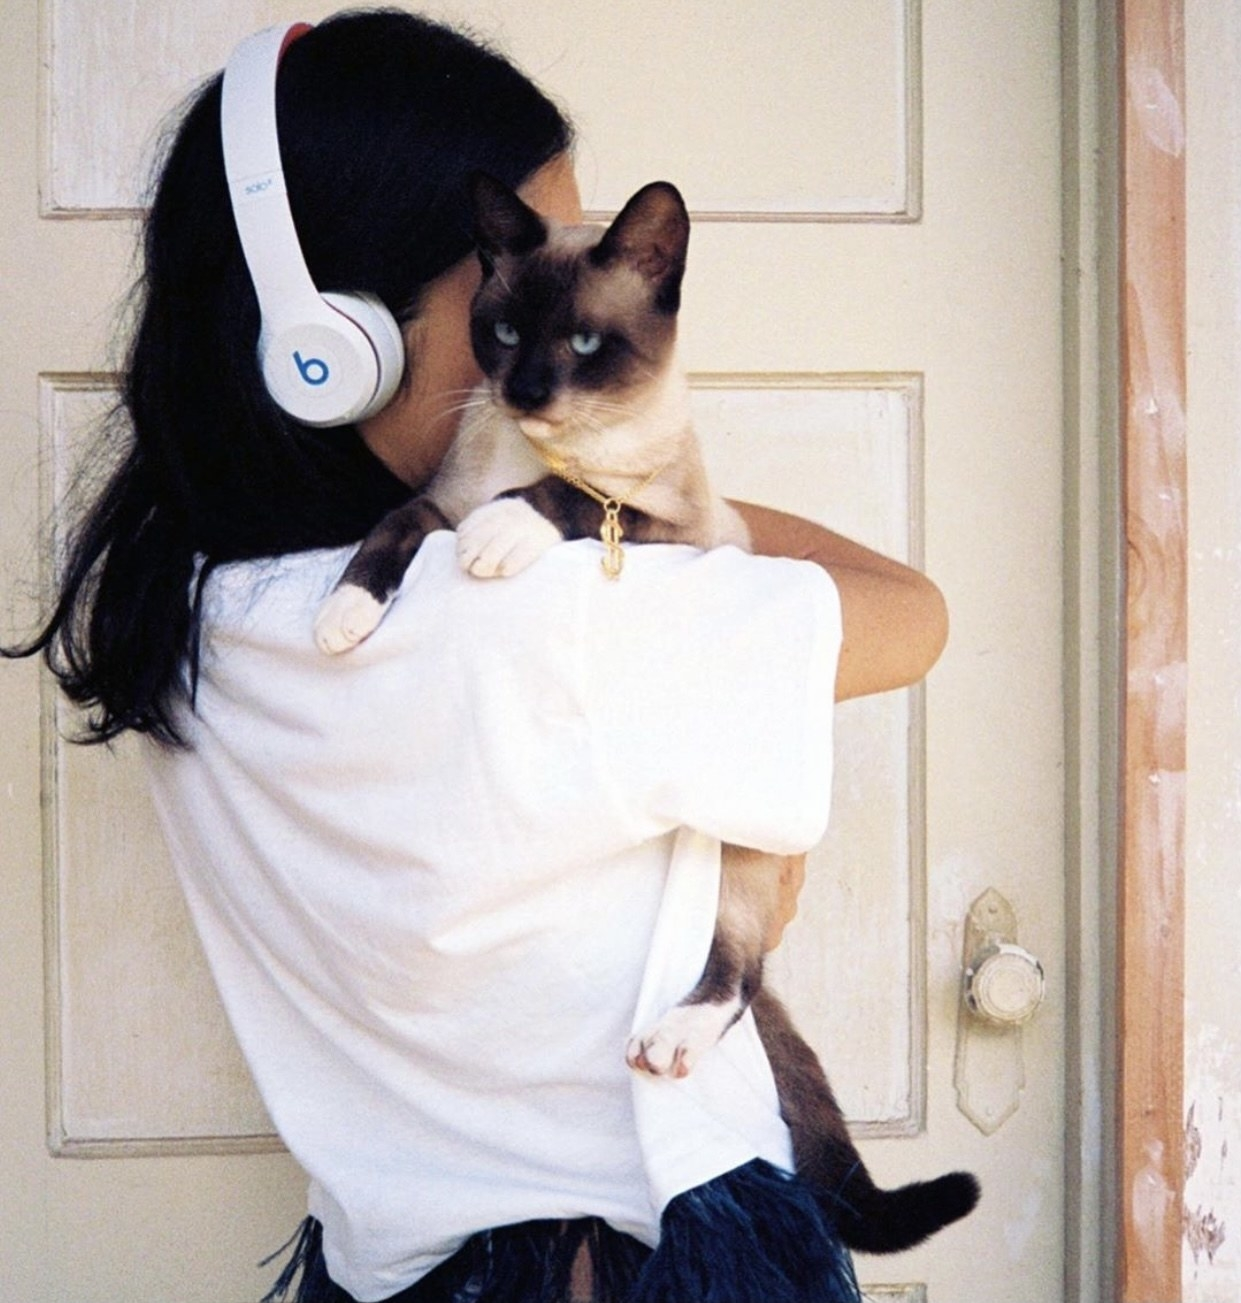 Person is holding a cat with white Beats headphones on